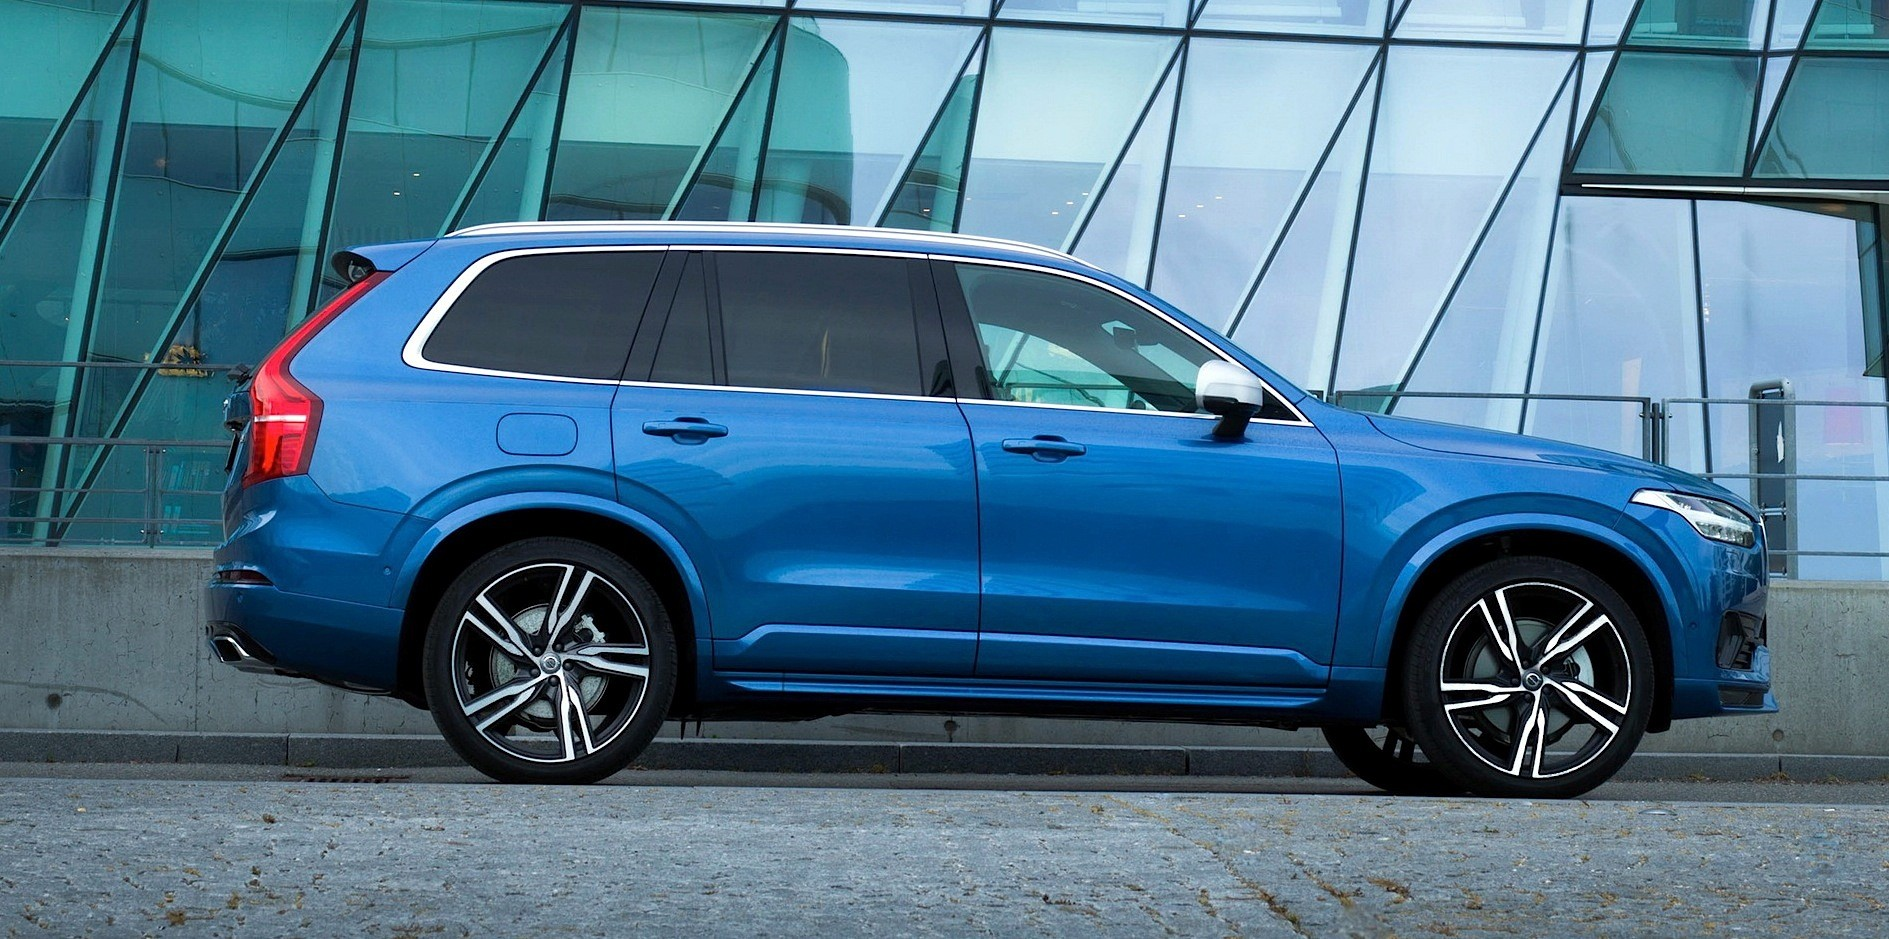 2016 Volvo XC90 R-Design Shows More Aggressive Design and 22-inch Wheels - autoevolution